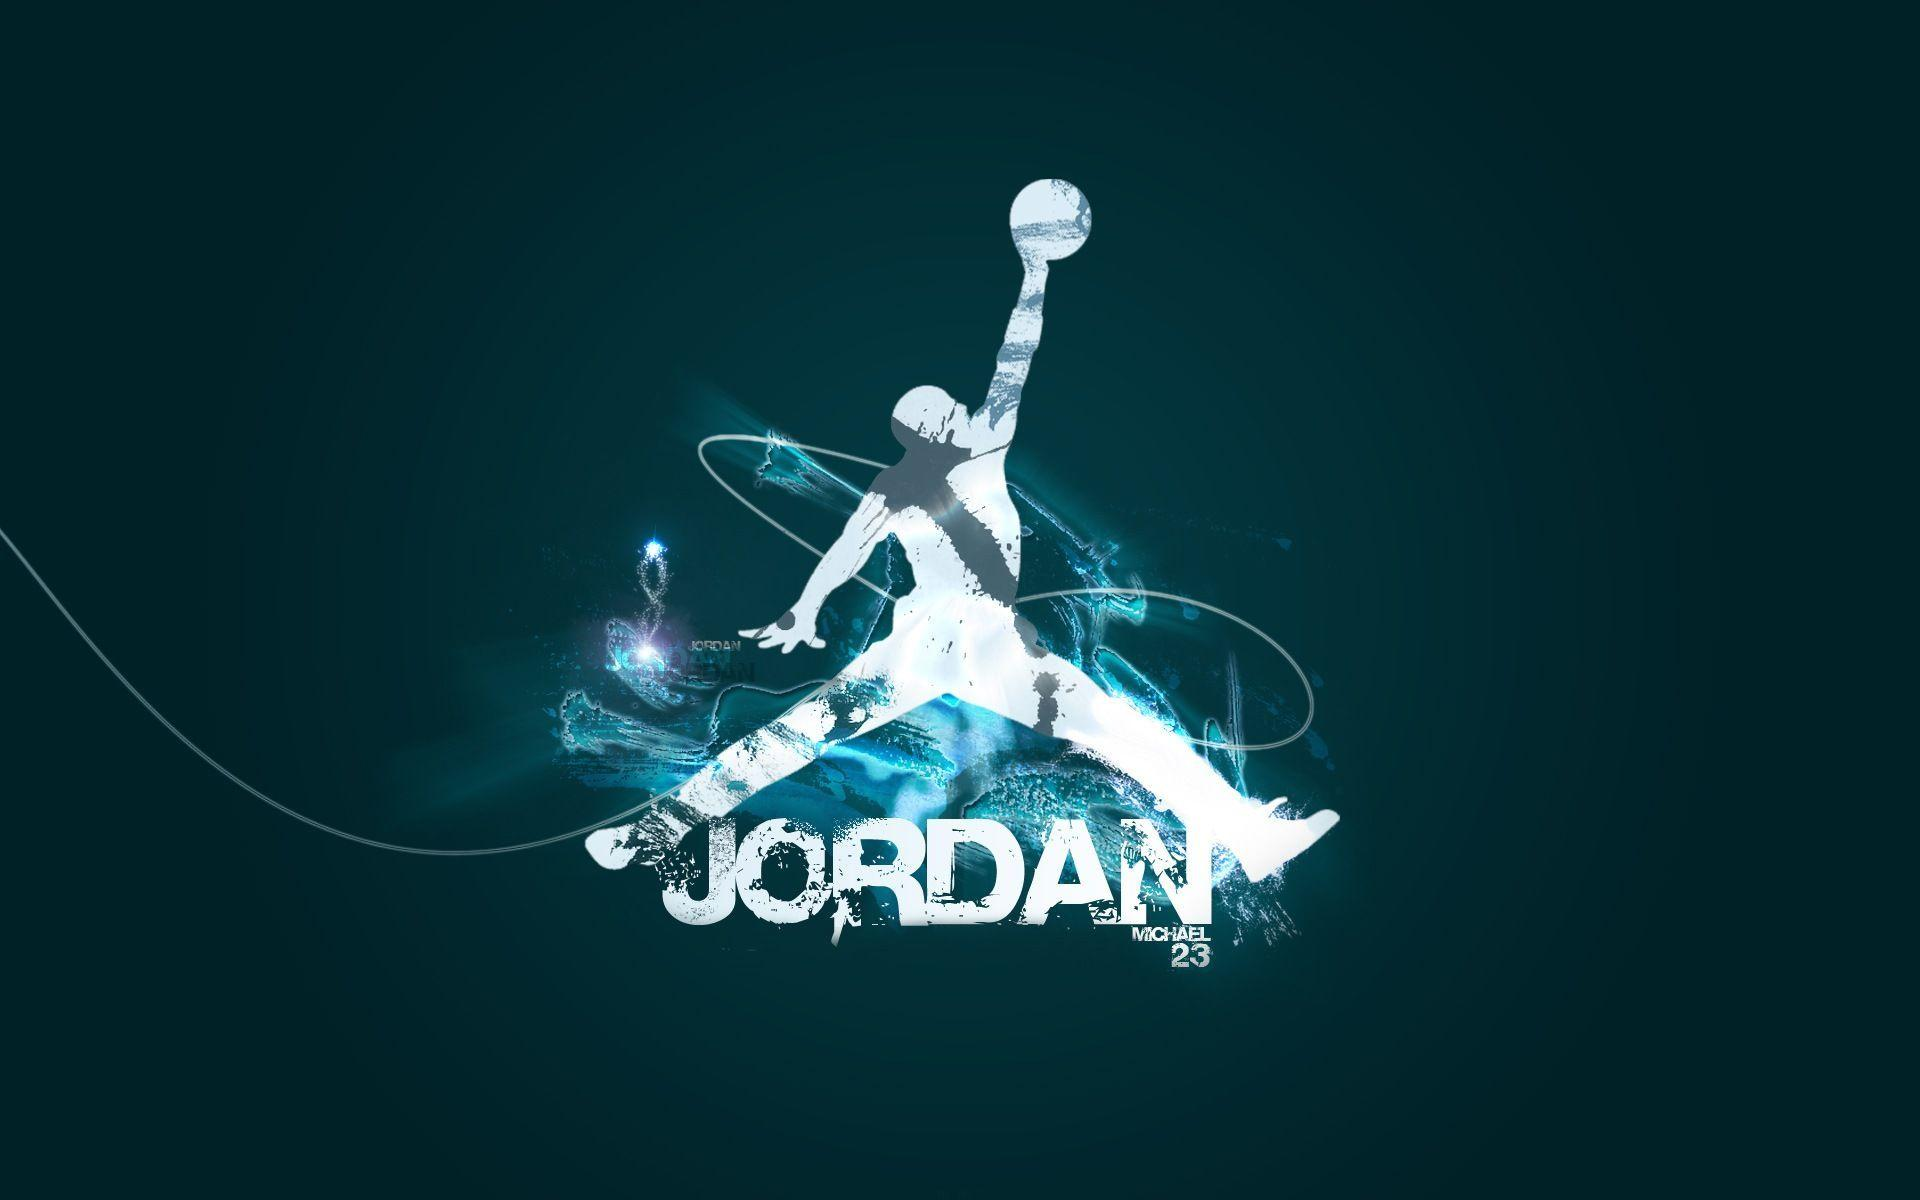 Air Jordan Wallpapers - Cueva de fondo de pantalla